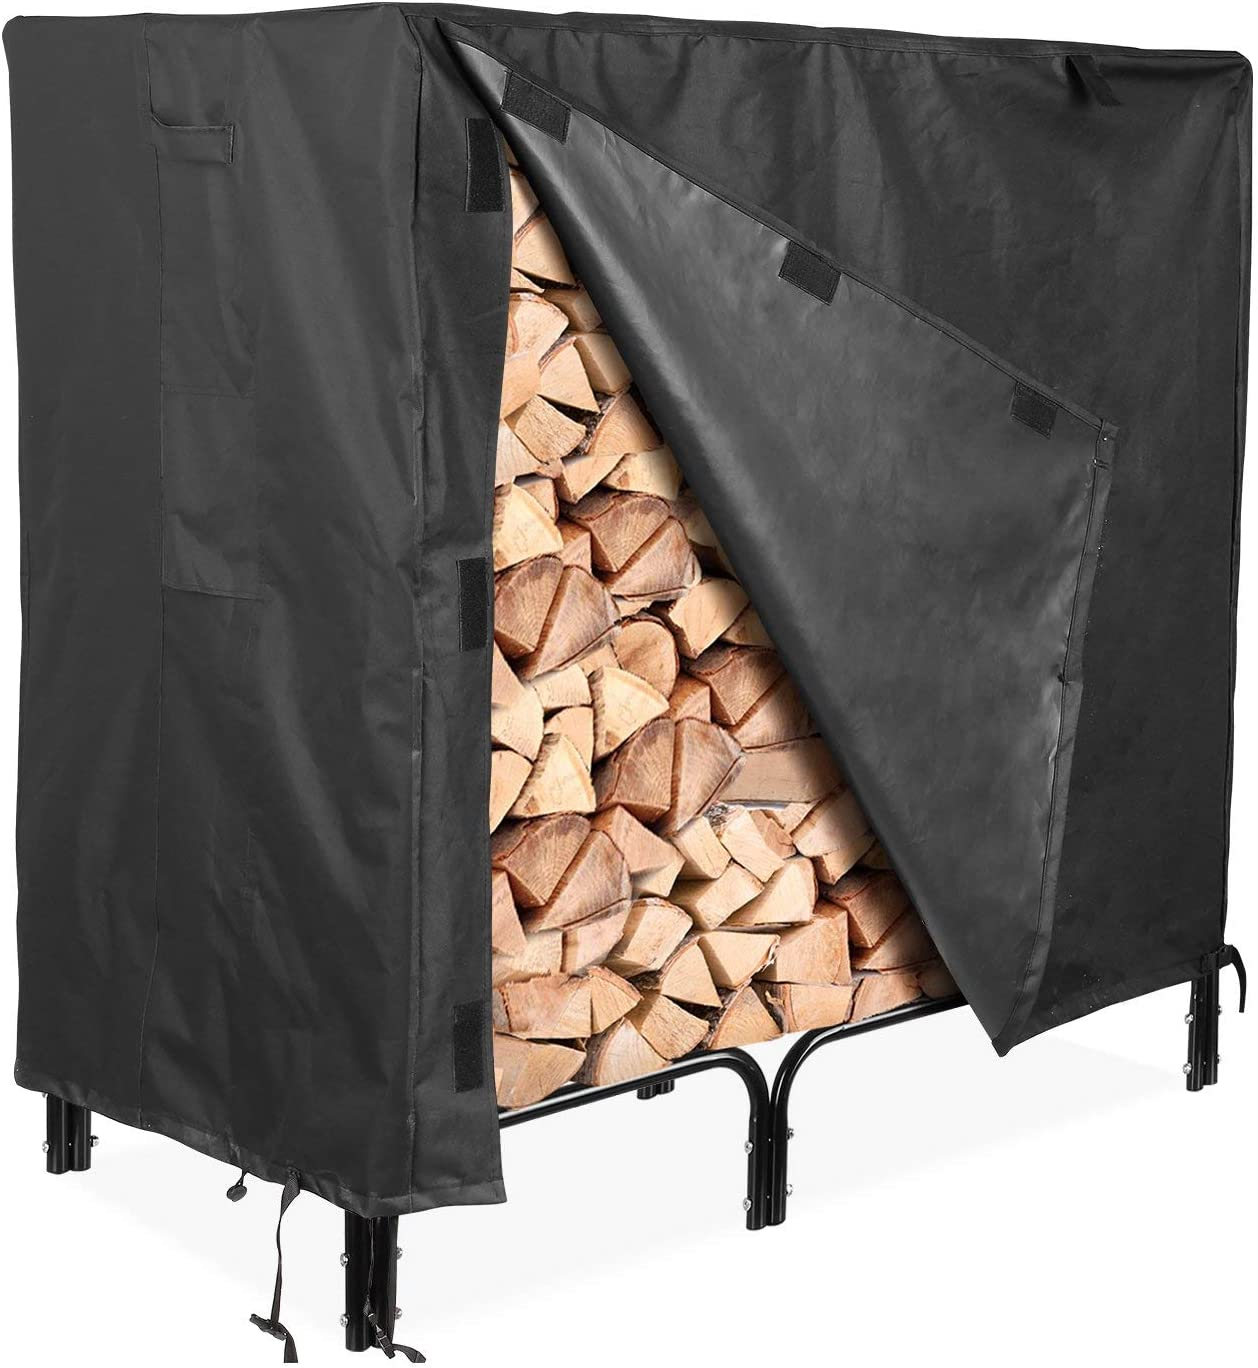 4ft Waterproof Log Rack Cover Tucson Mall Heavy Fi Outdoor Lowest price challenge 600D Duty Oxford